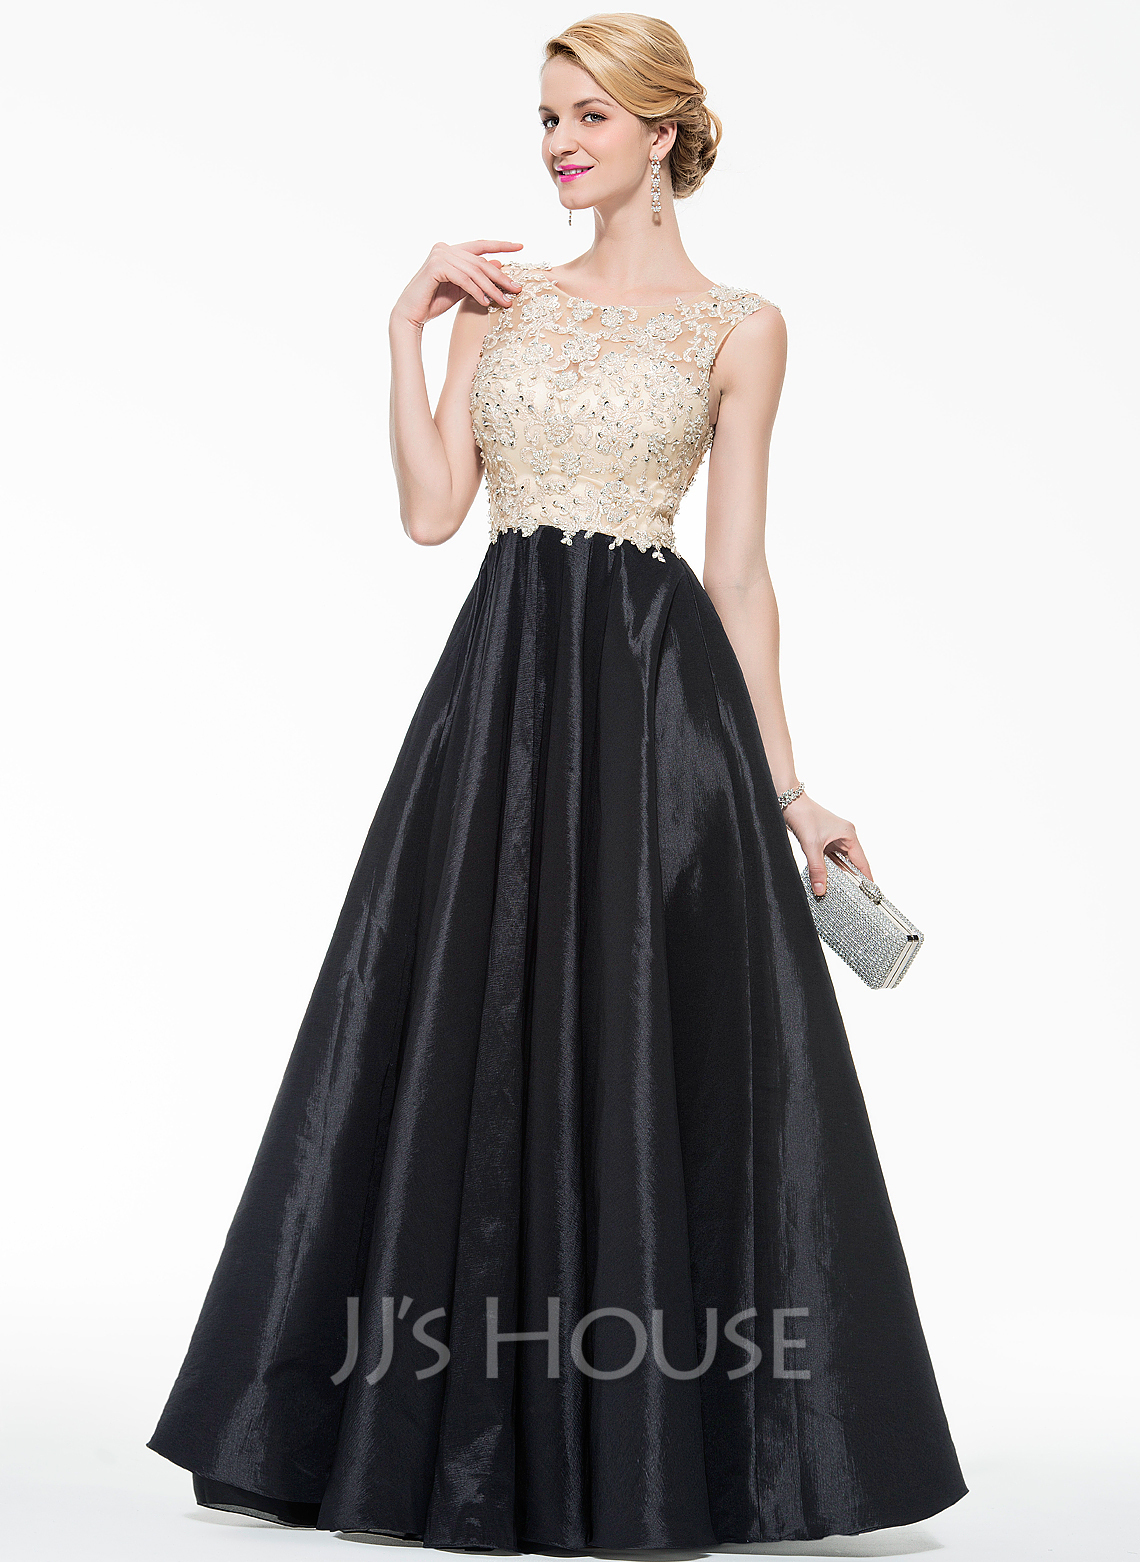 60653e1438d Ball-Gown Scoop Neck Floor-Length Taffeta Tulle Prom Dresses With Beading  Appliques Lace. Loading zoom